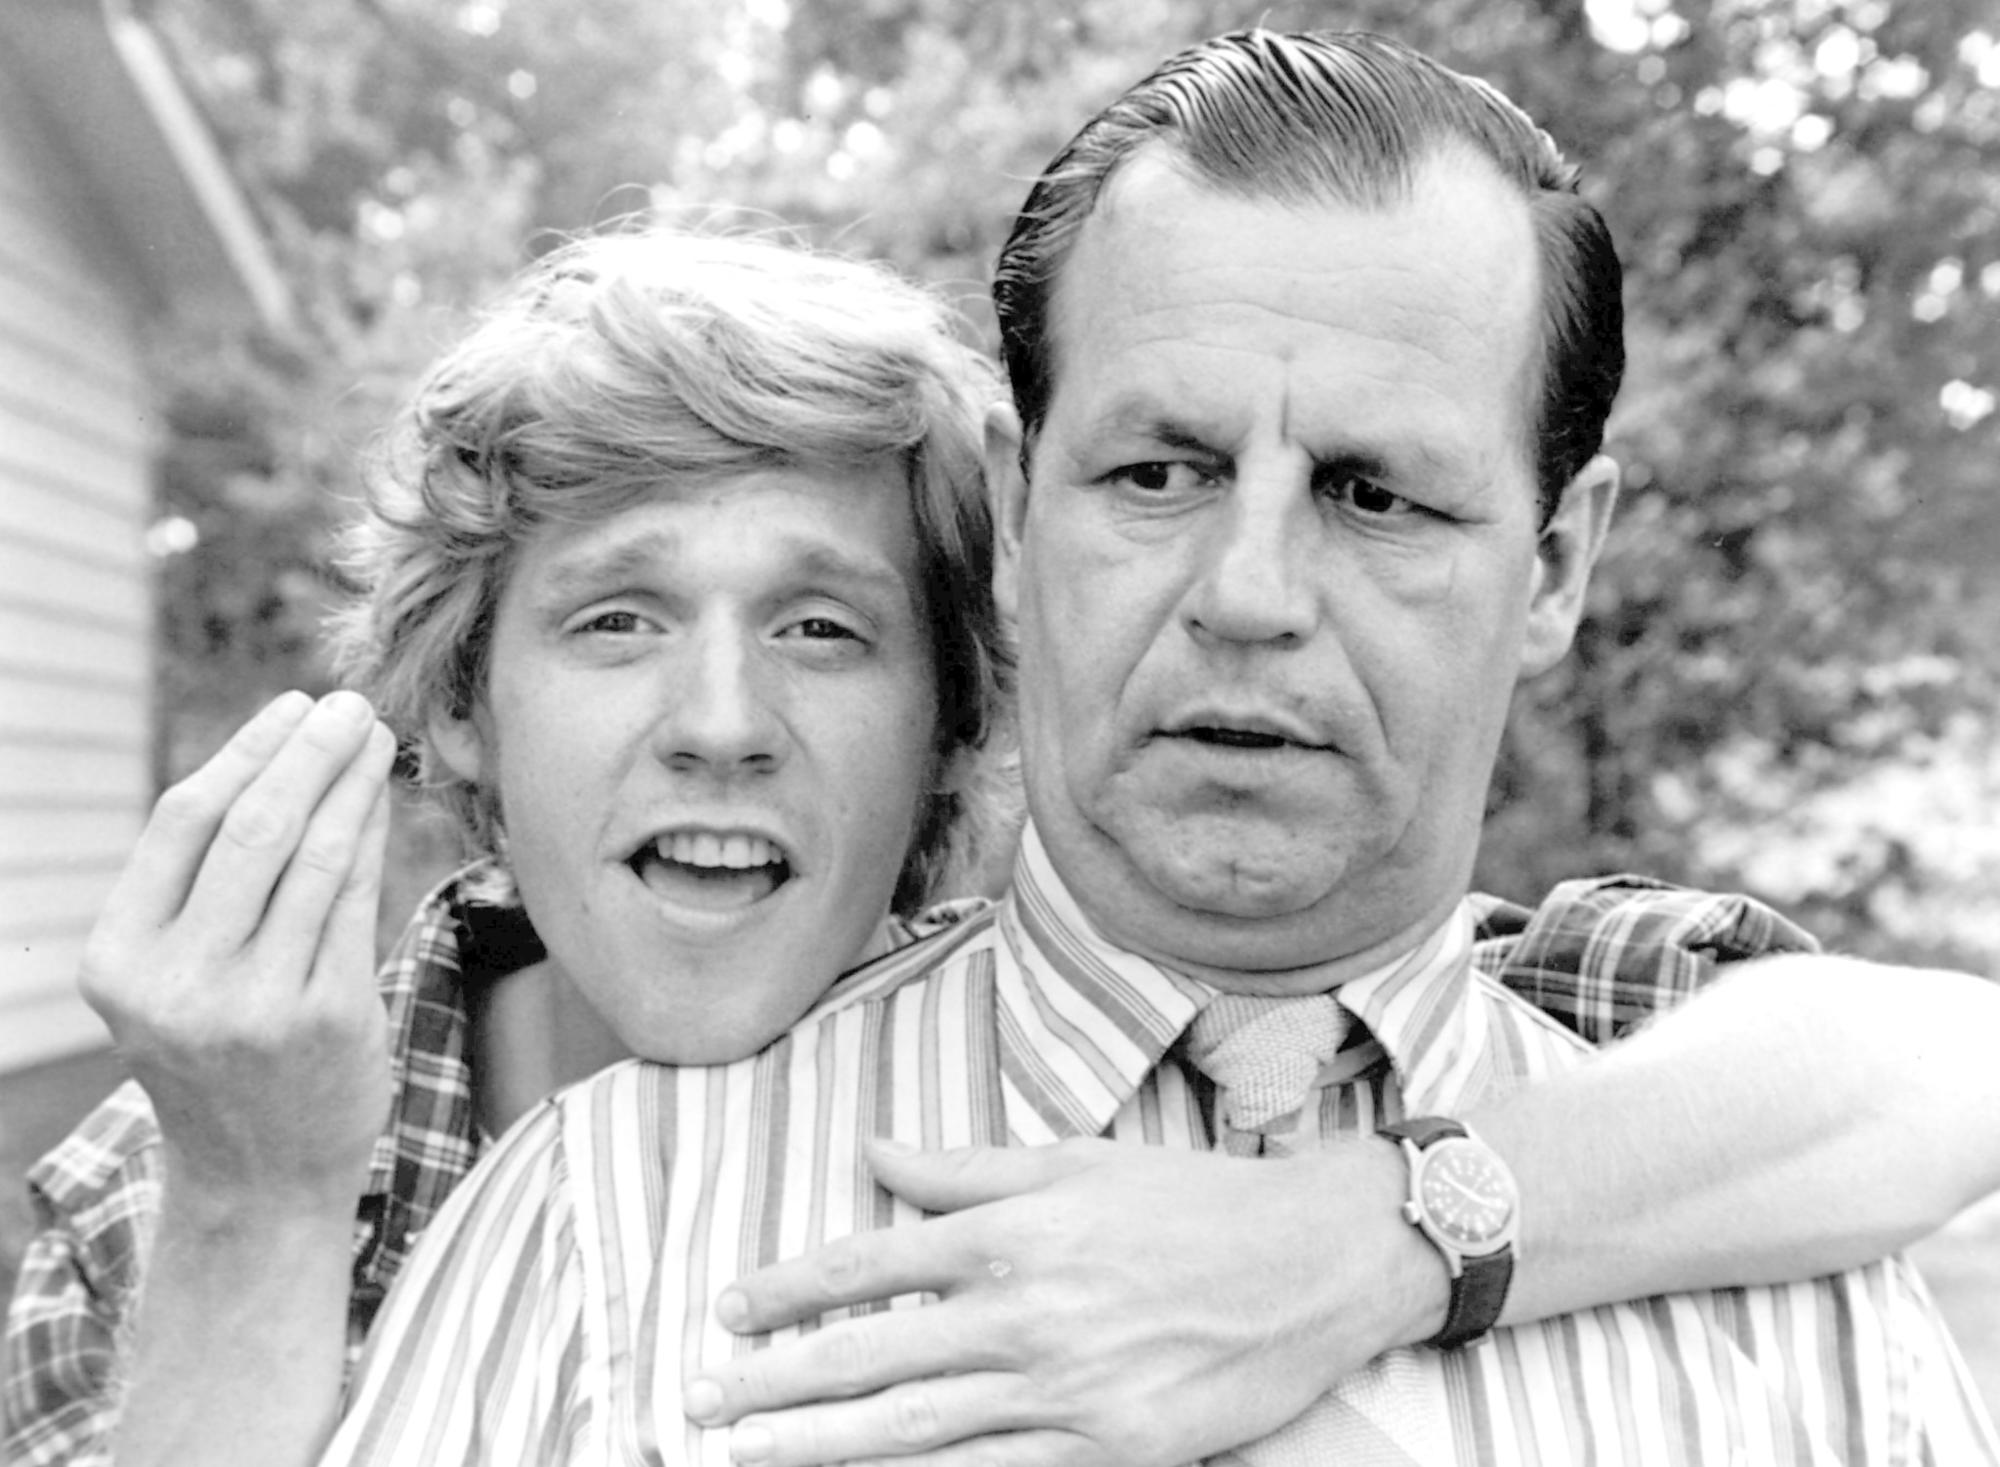 Dave (Dennis Christopher) with his dad (Paul Dooley) in the 1979 film